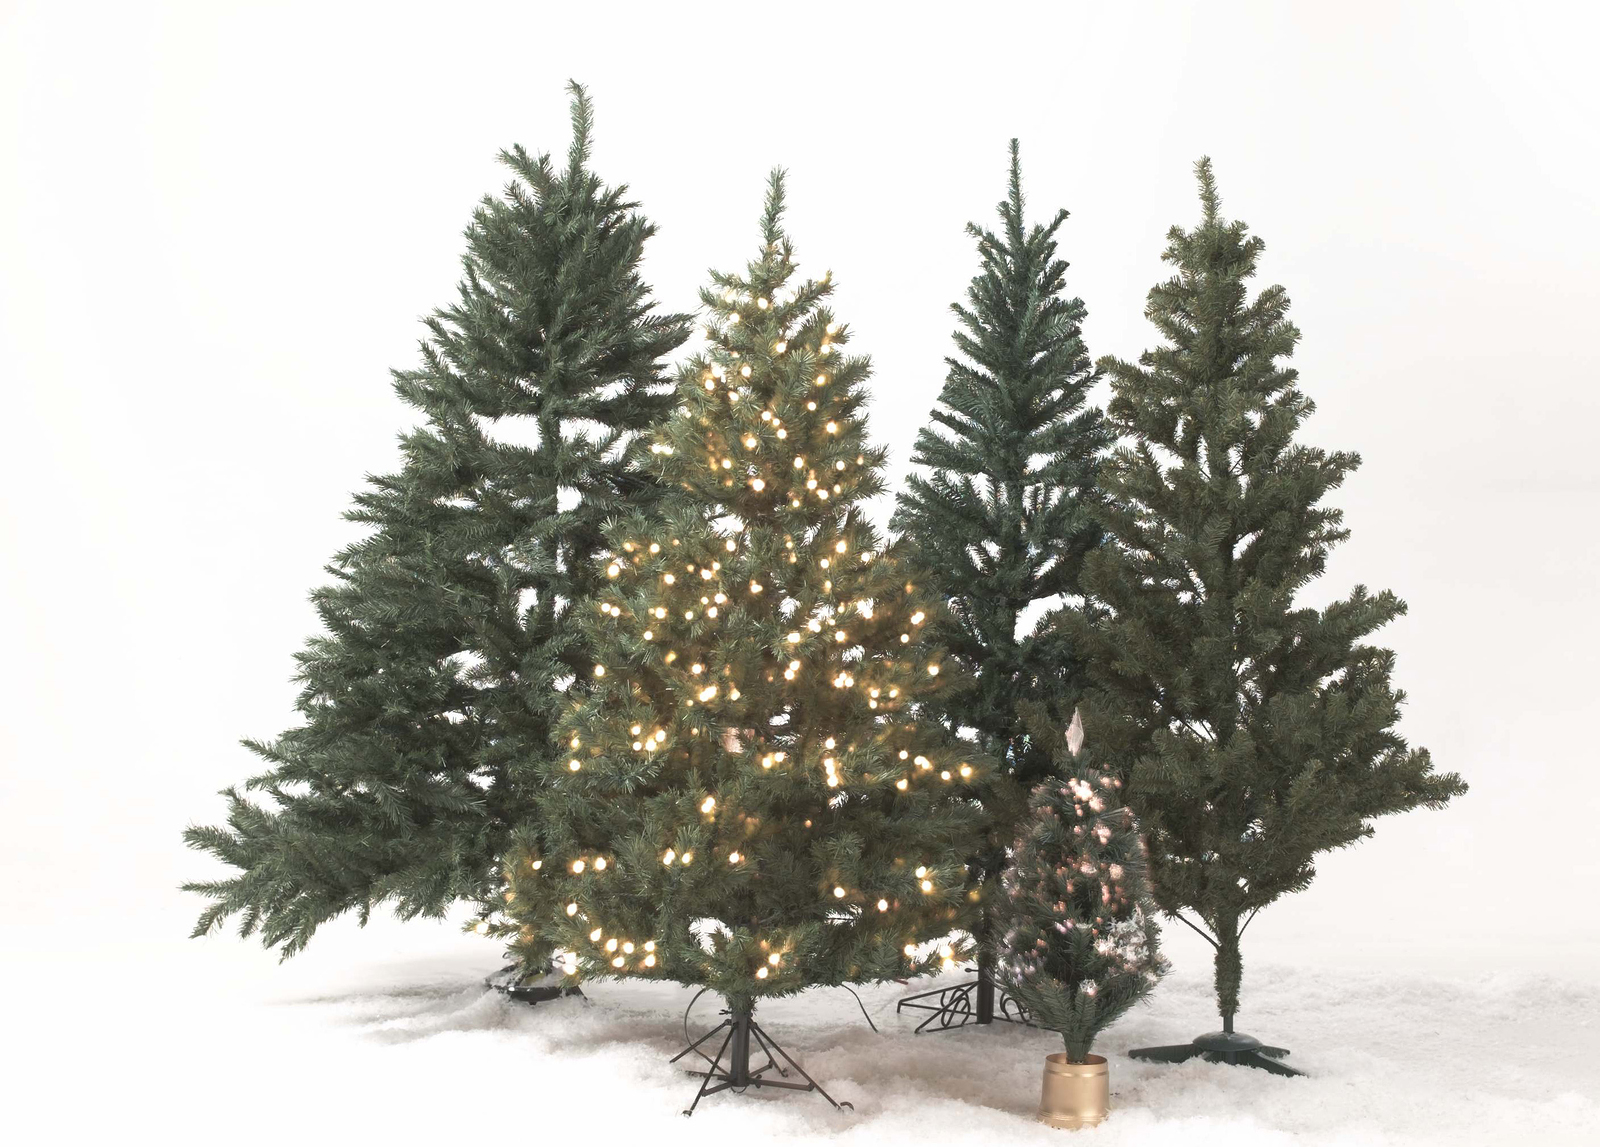 Christmas Trees: Real Or Artificial?